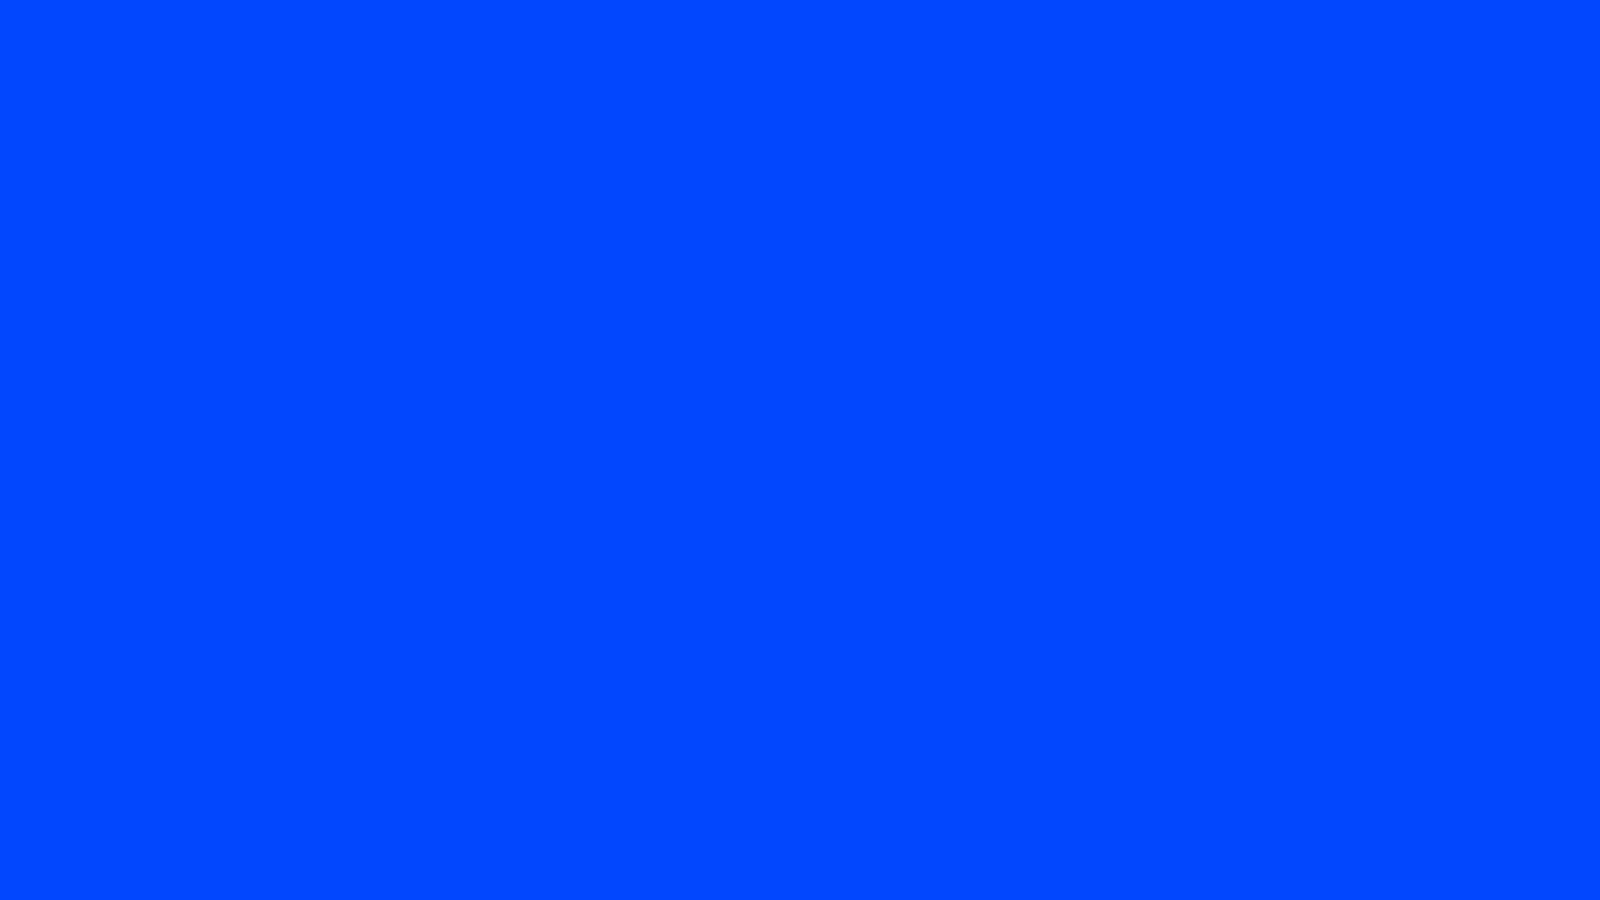 1600x900 Blue RYB Solid Color Background